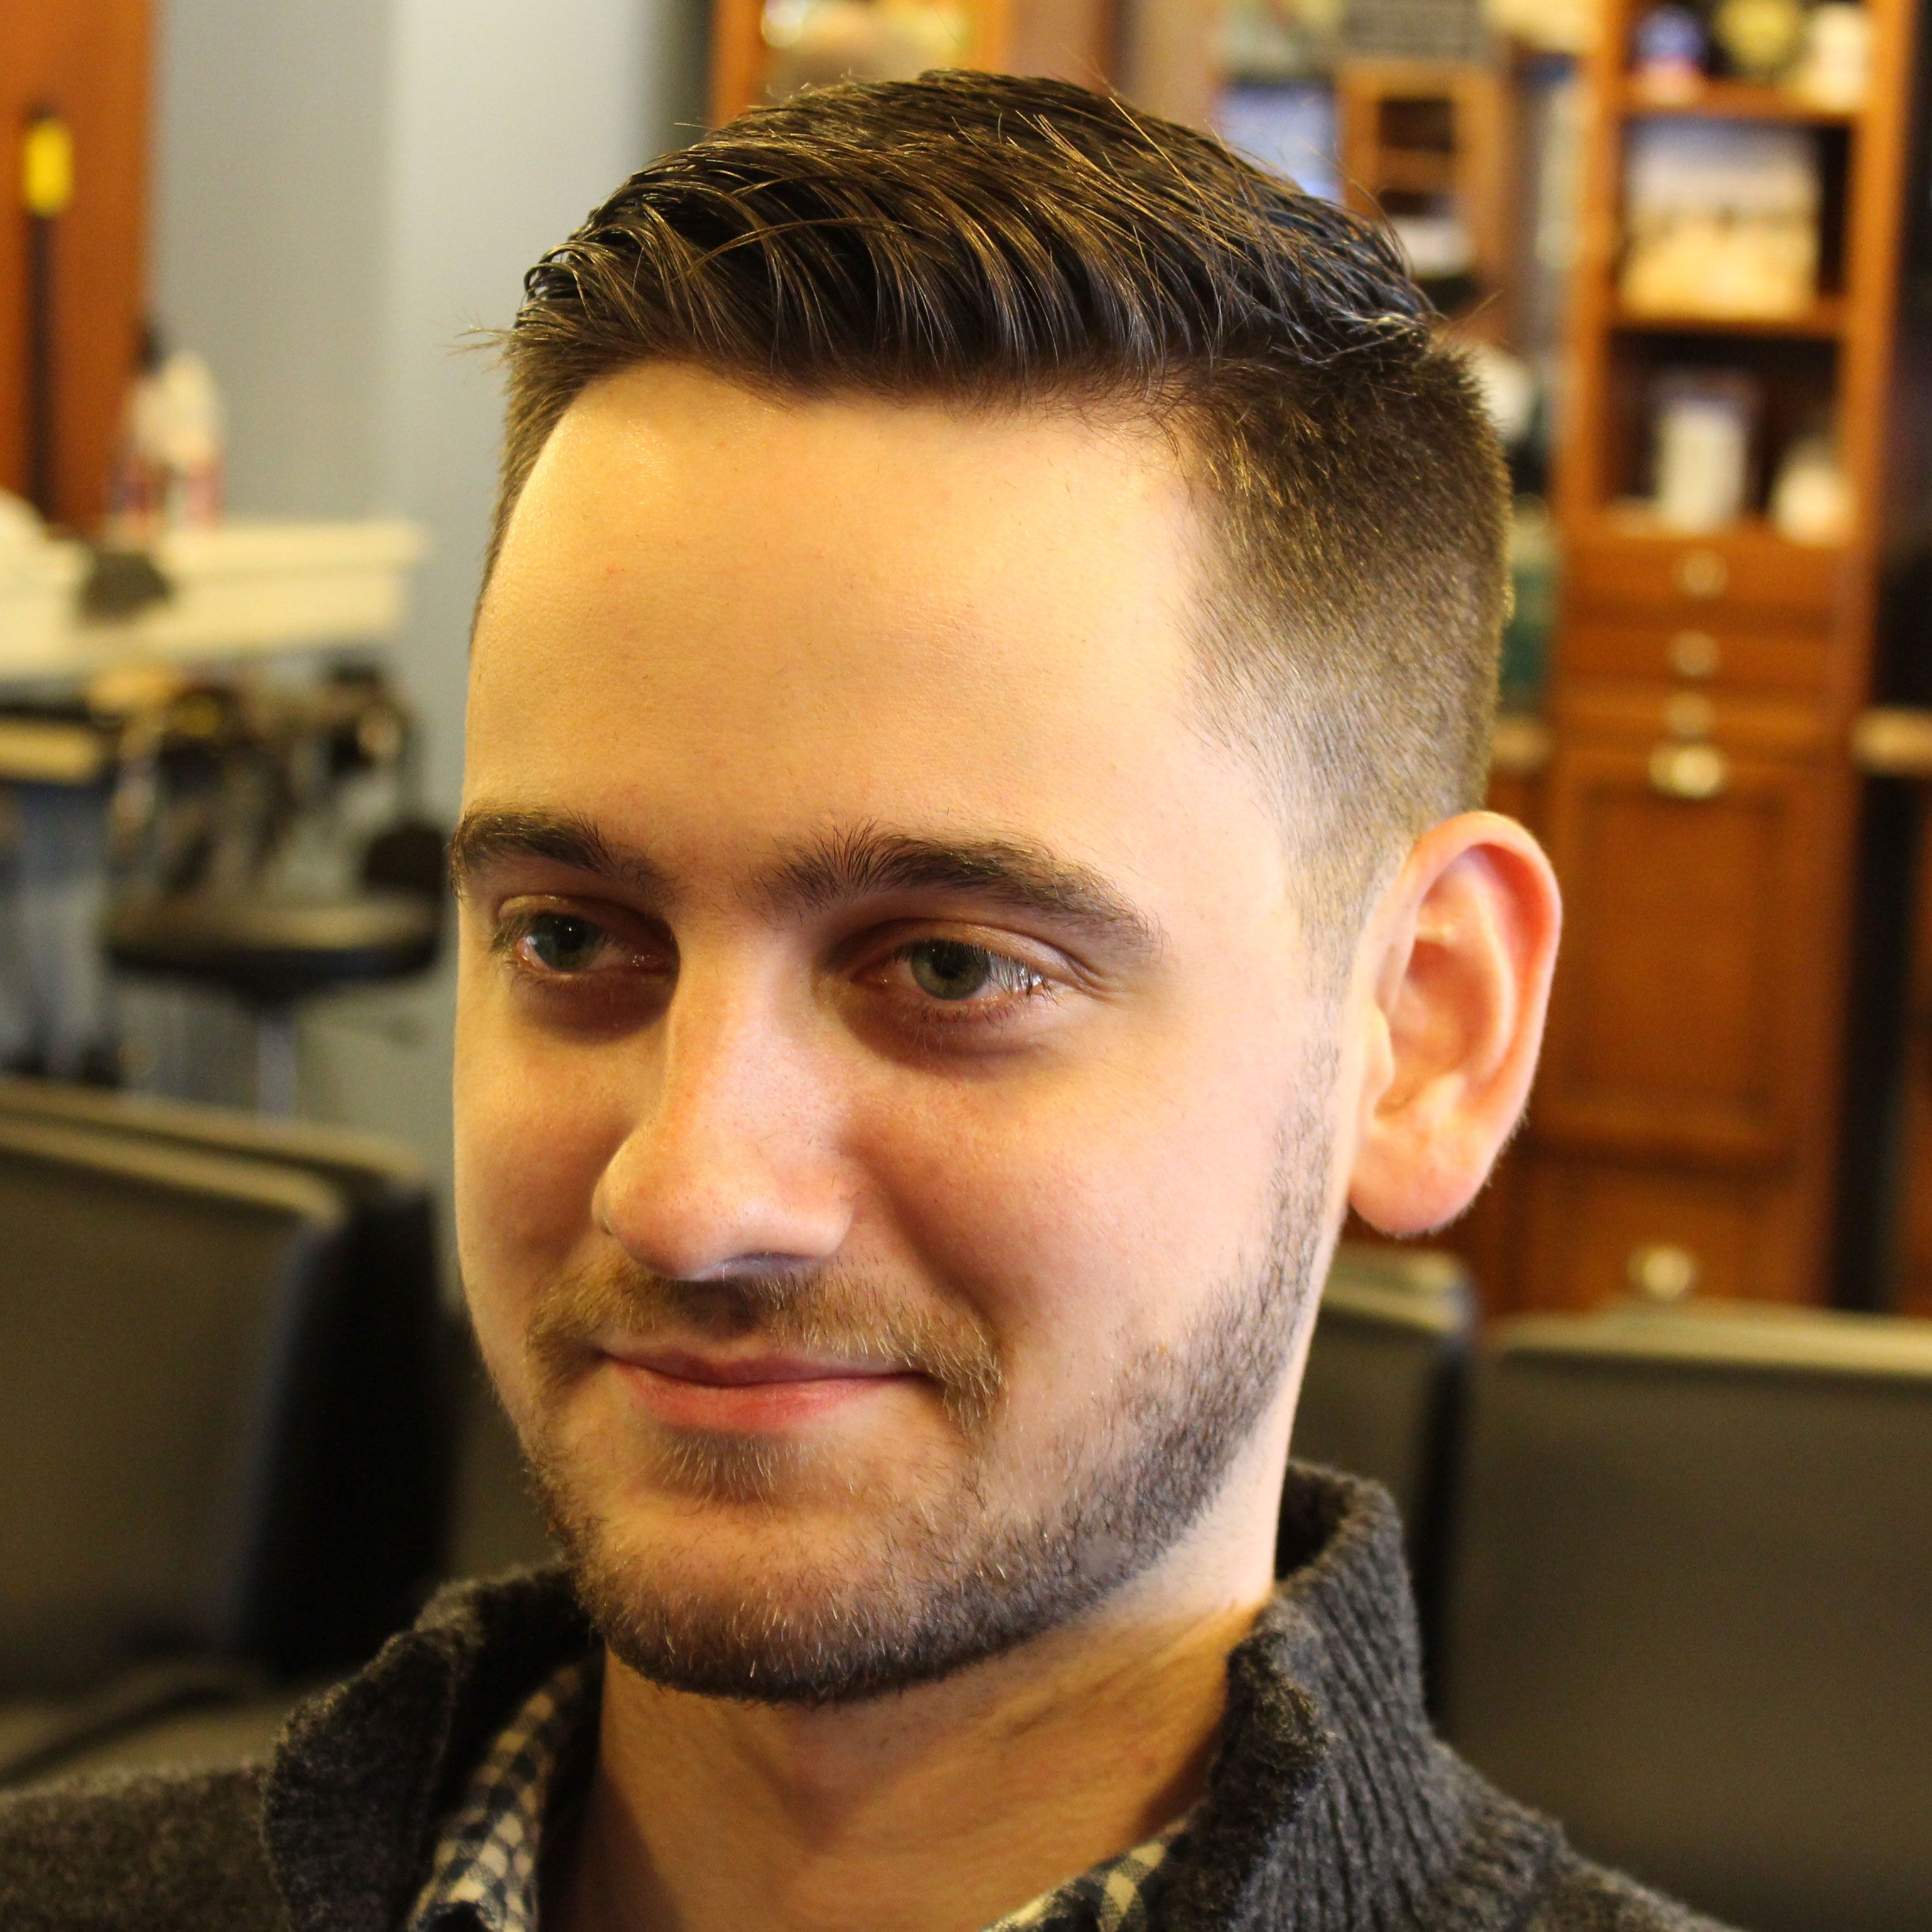 hairstyles for men with beards - gwallt | hairstyles | pinterest